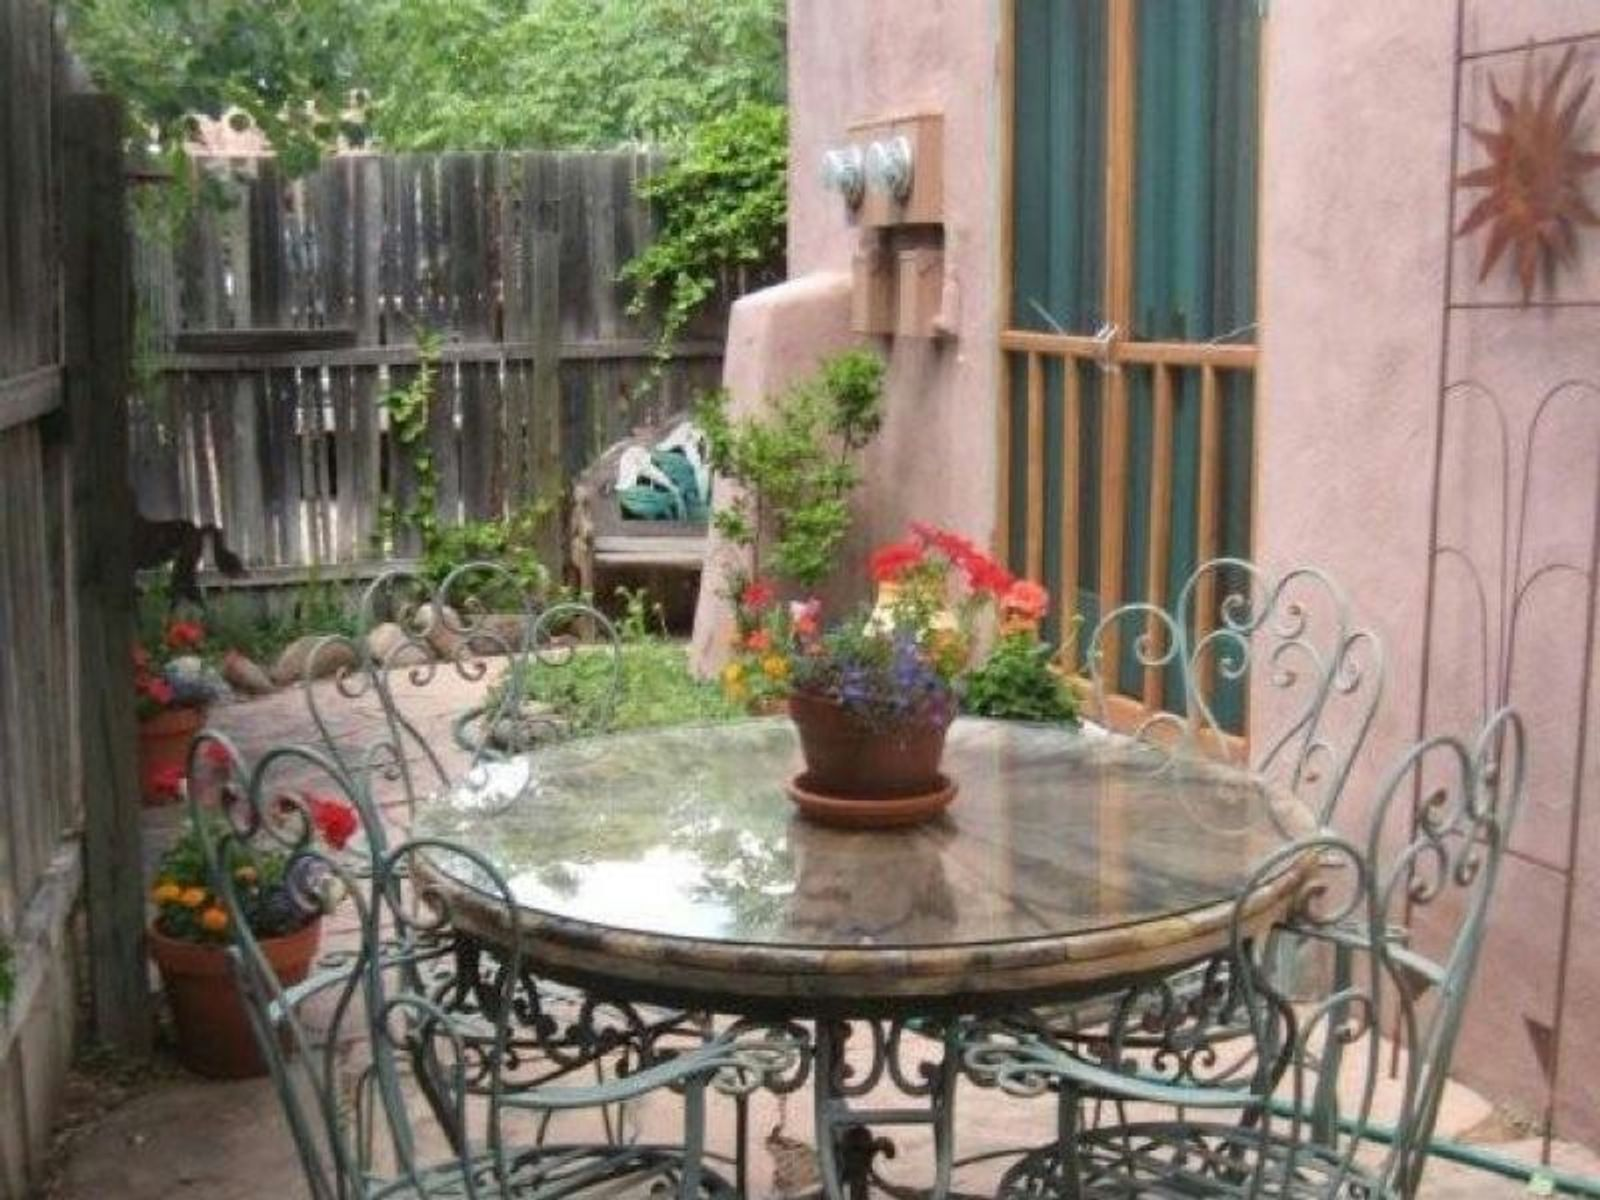 230-B  Irvine, Santa Fe NM Condominium - Santa Fe Real Estate